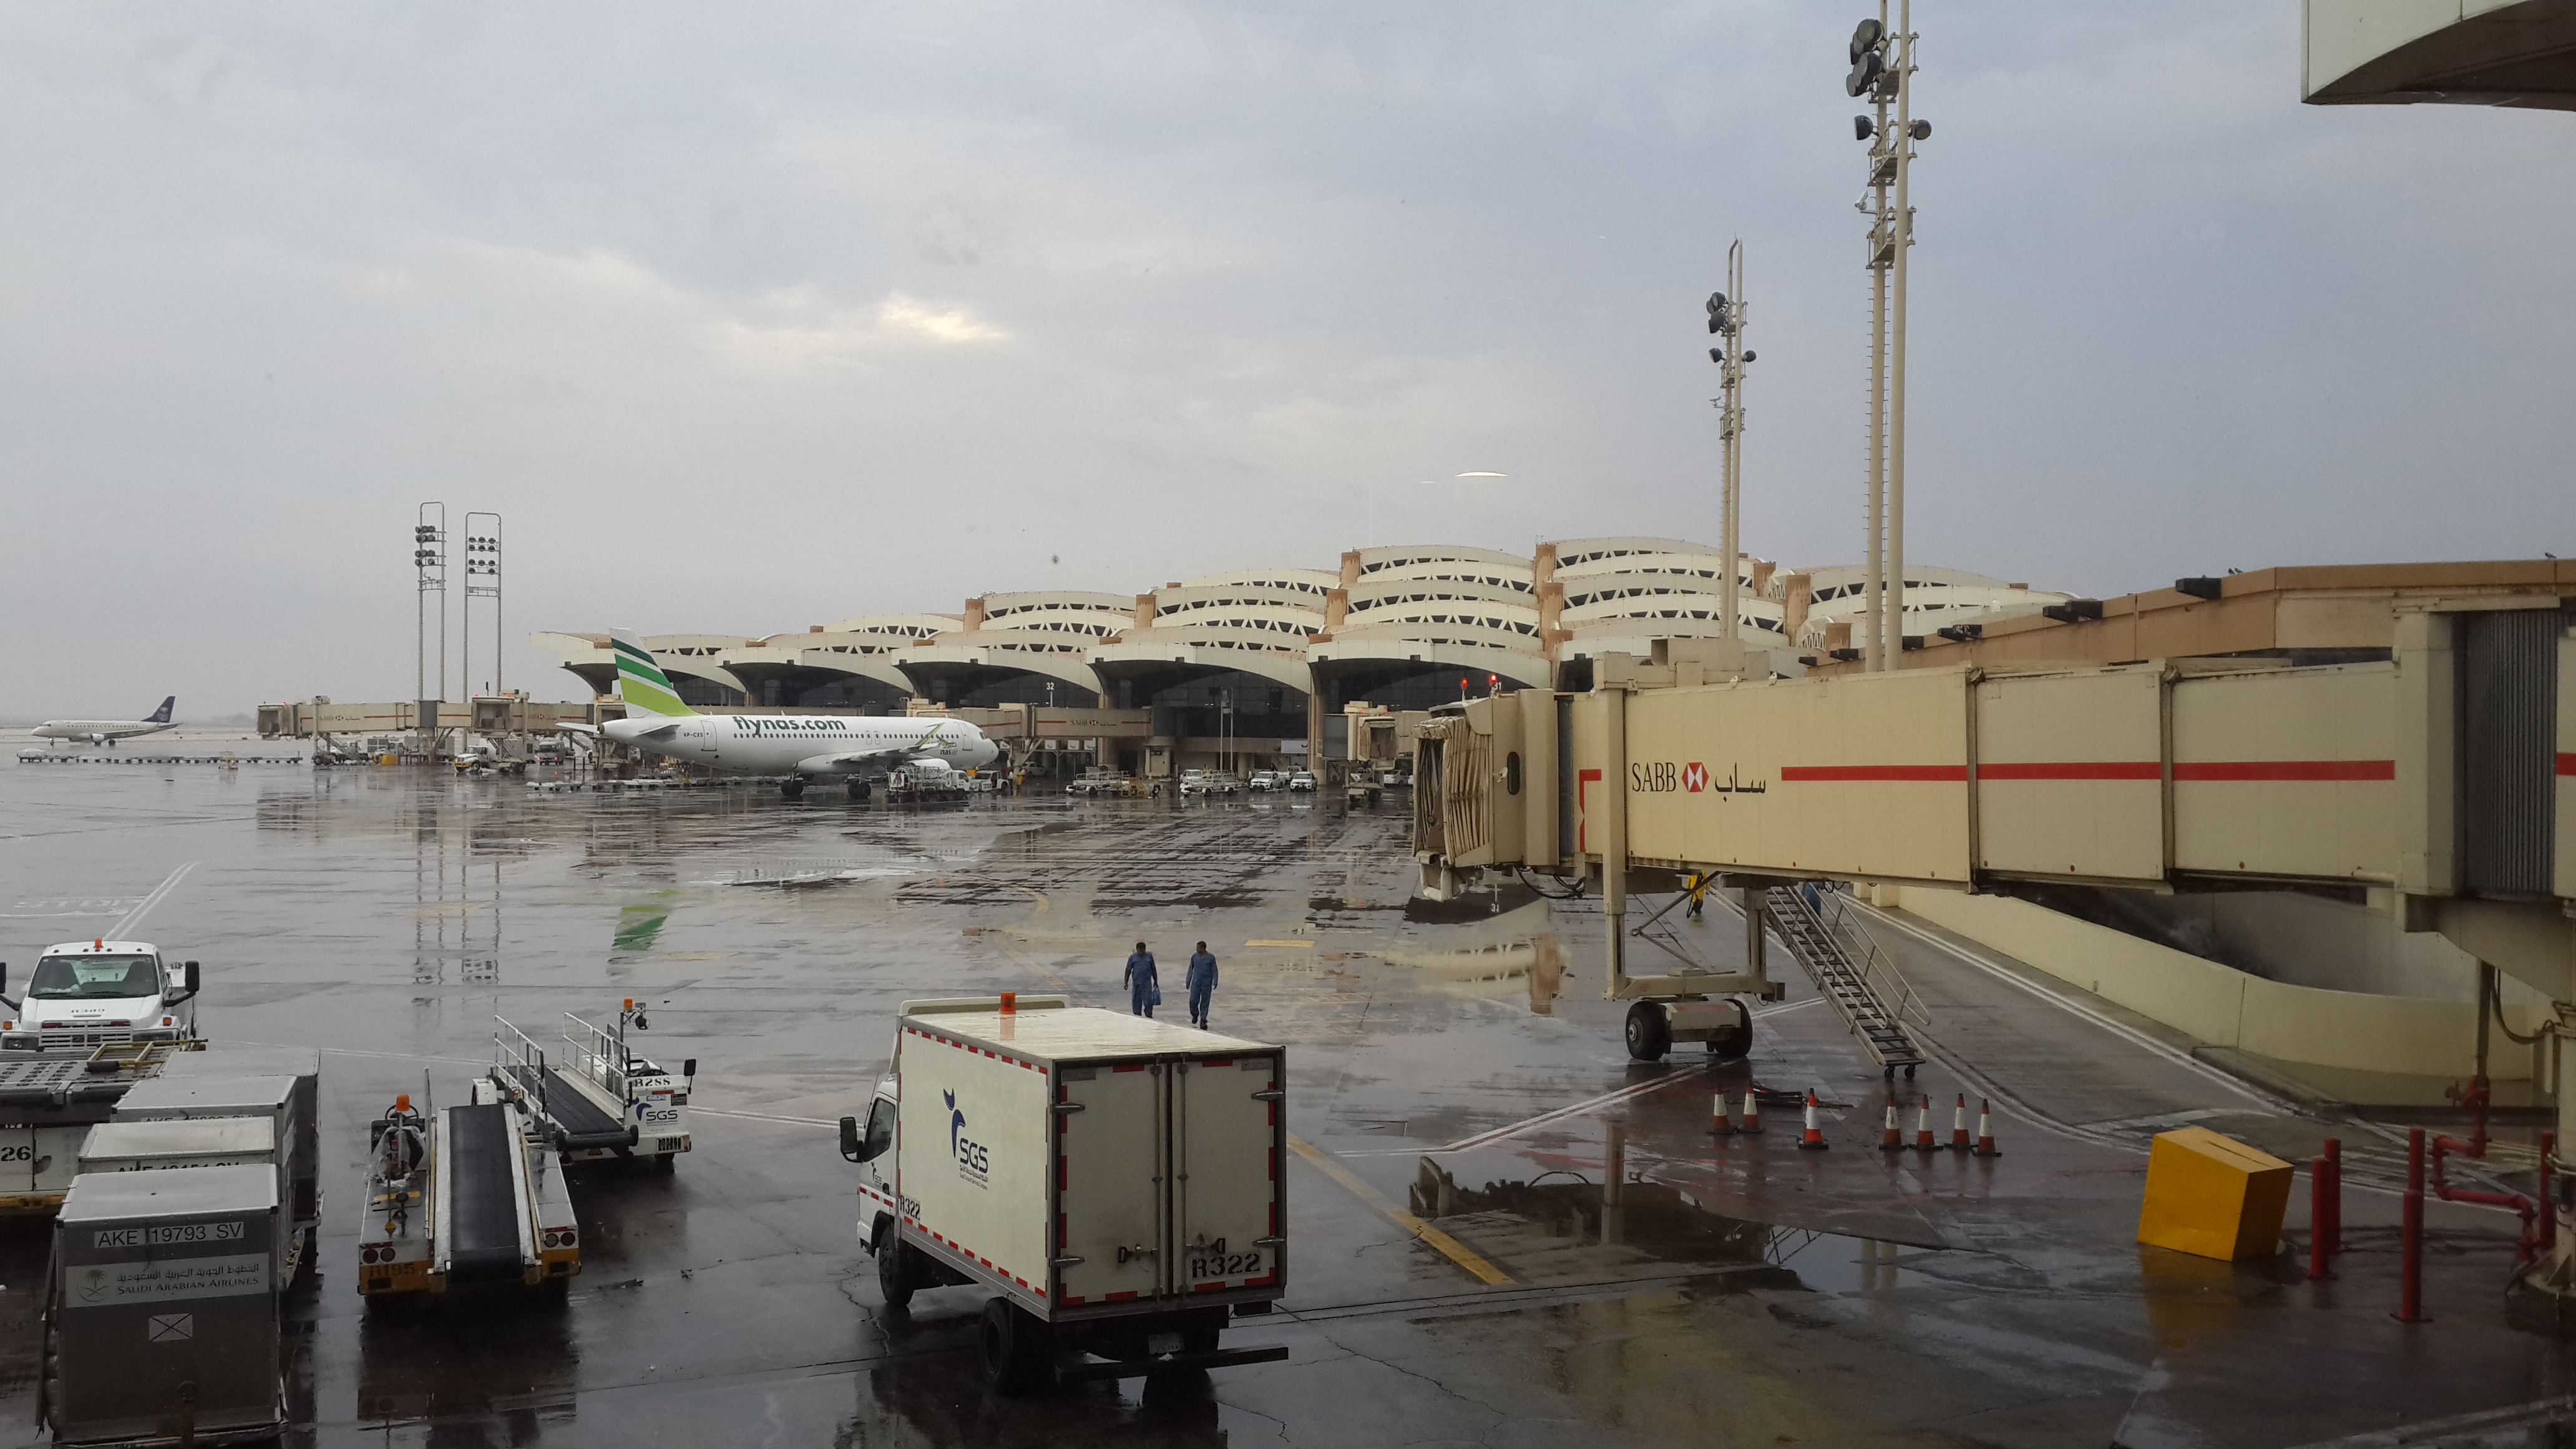 Eurescape – Part 3: Review of Saudia Airlines and Layover ...